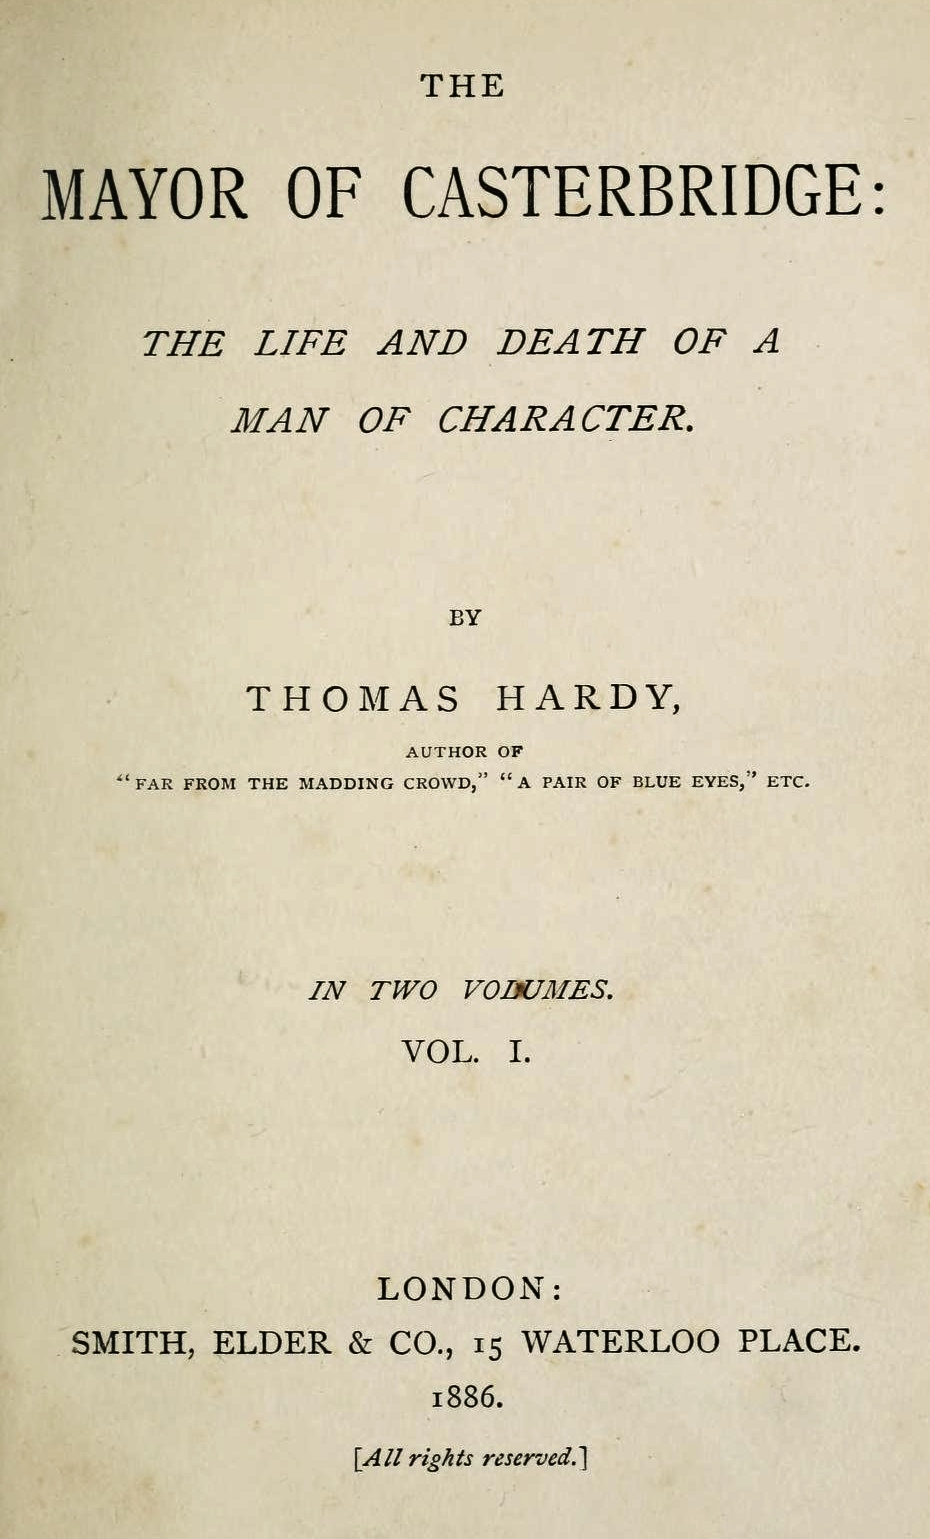 character analysis of elizabeth jane in the mayor of casterbridge by thomas hardy Elizabeth-jane, tempered in poverty  the mayor of casterbridge thomas hardy share home literature notes  character analysis elizabeth-jane.